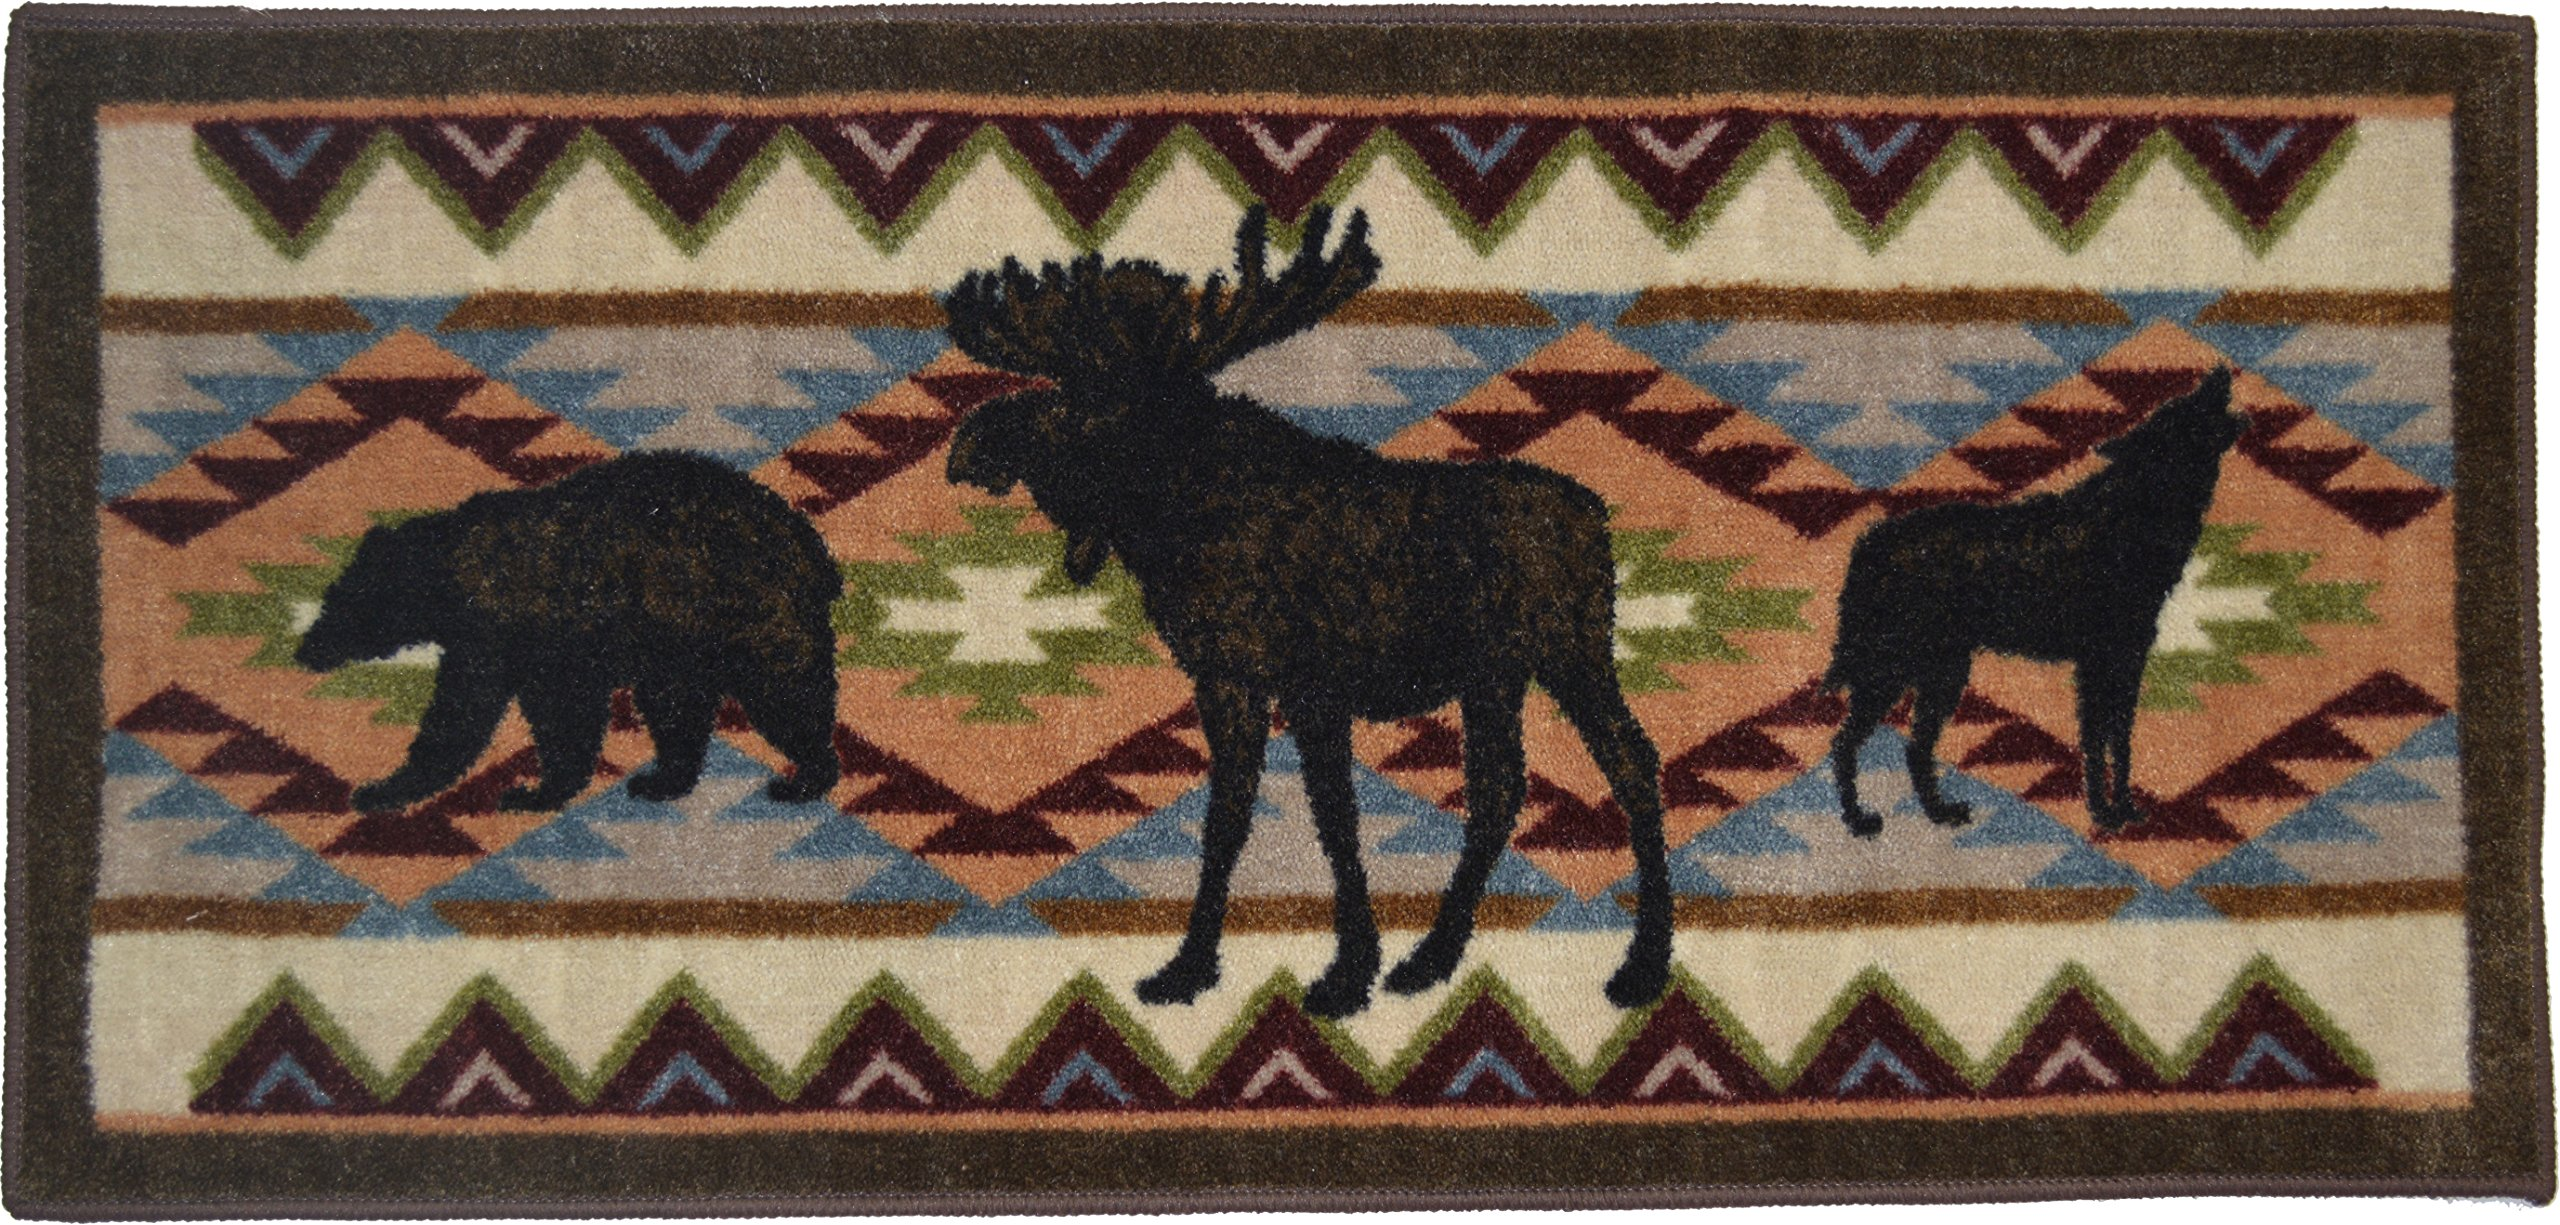 Wholesale Rug Source Cozy Cabin Woodland Party Nonskid (Non Slip) Cute Lodge Kitchen Mat Rug, 20'' W x 44'' L